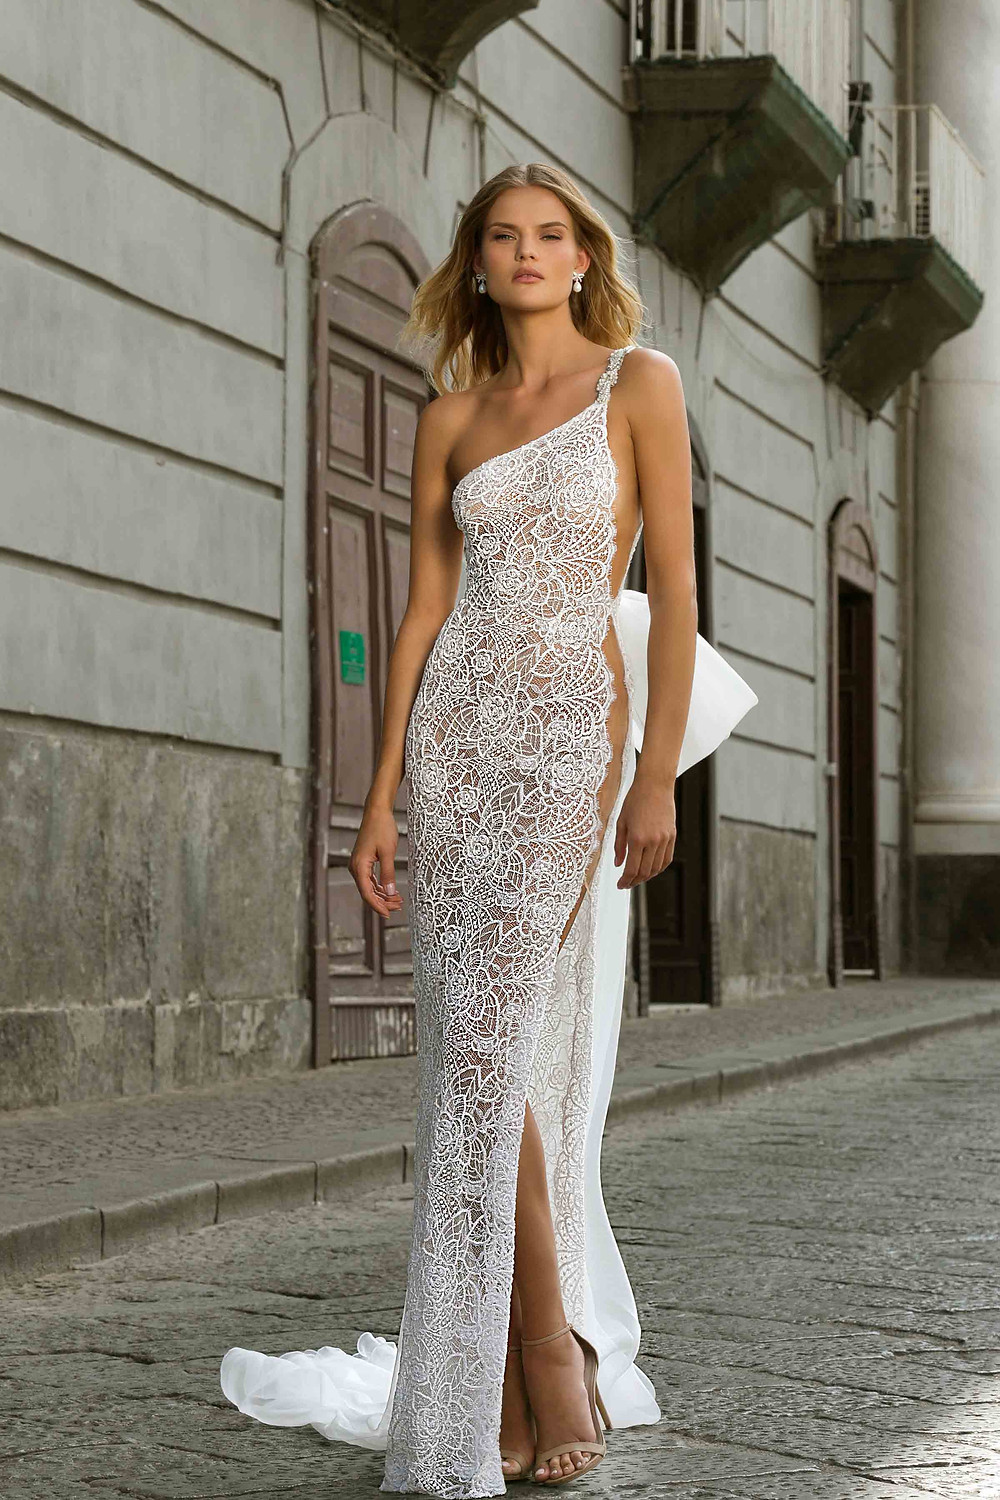 A one shoulder lace sheath wedding dress, with a high slit, a thin strap and a large bow